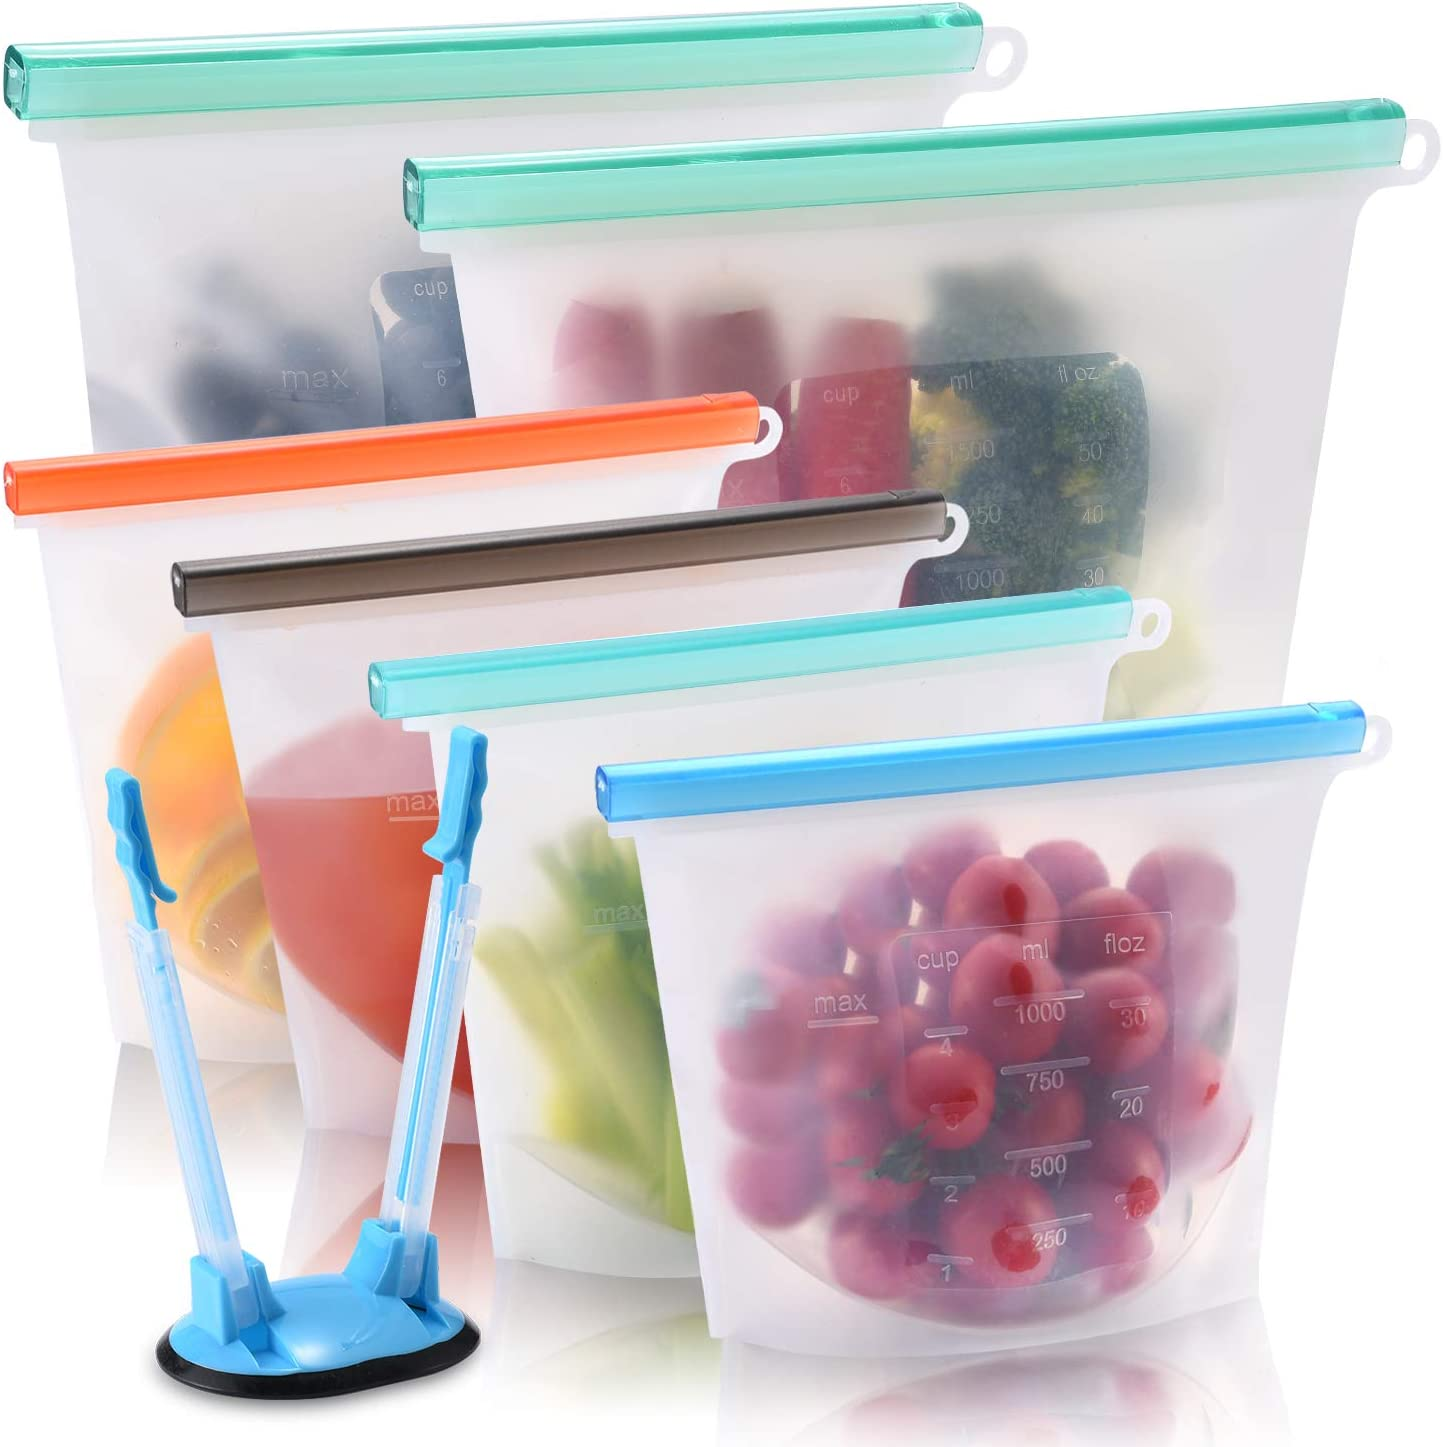 Reusable Silicone Food Storage Bags, 2 Large 50oz Reusable Sandwich Bags and 4 Medium 30oz Silicone Snack Bags, Freezer Airtight Seal Reusable Food Preservation Bags for Fruit, Vegetables, Meat, Lunch